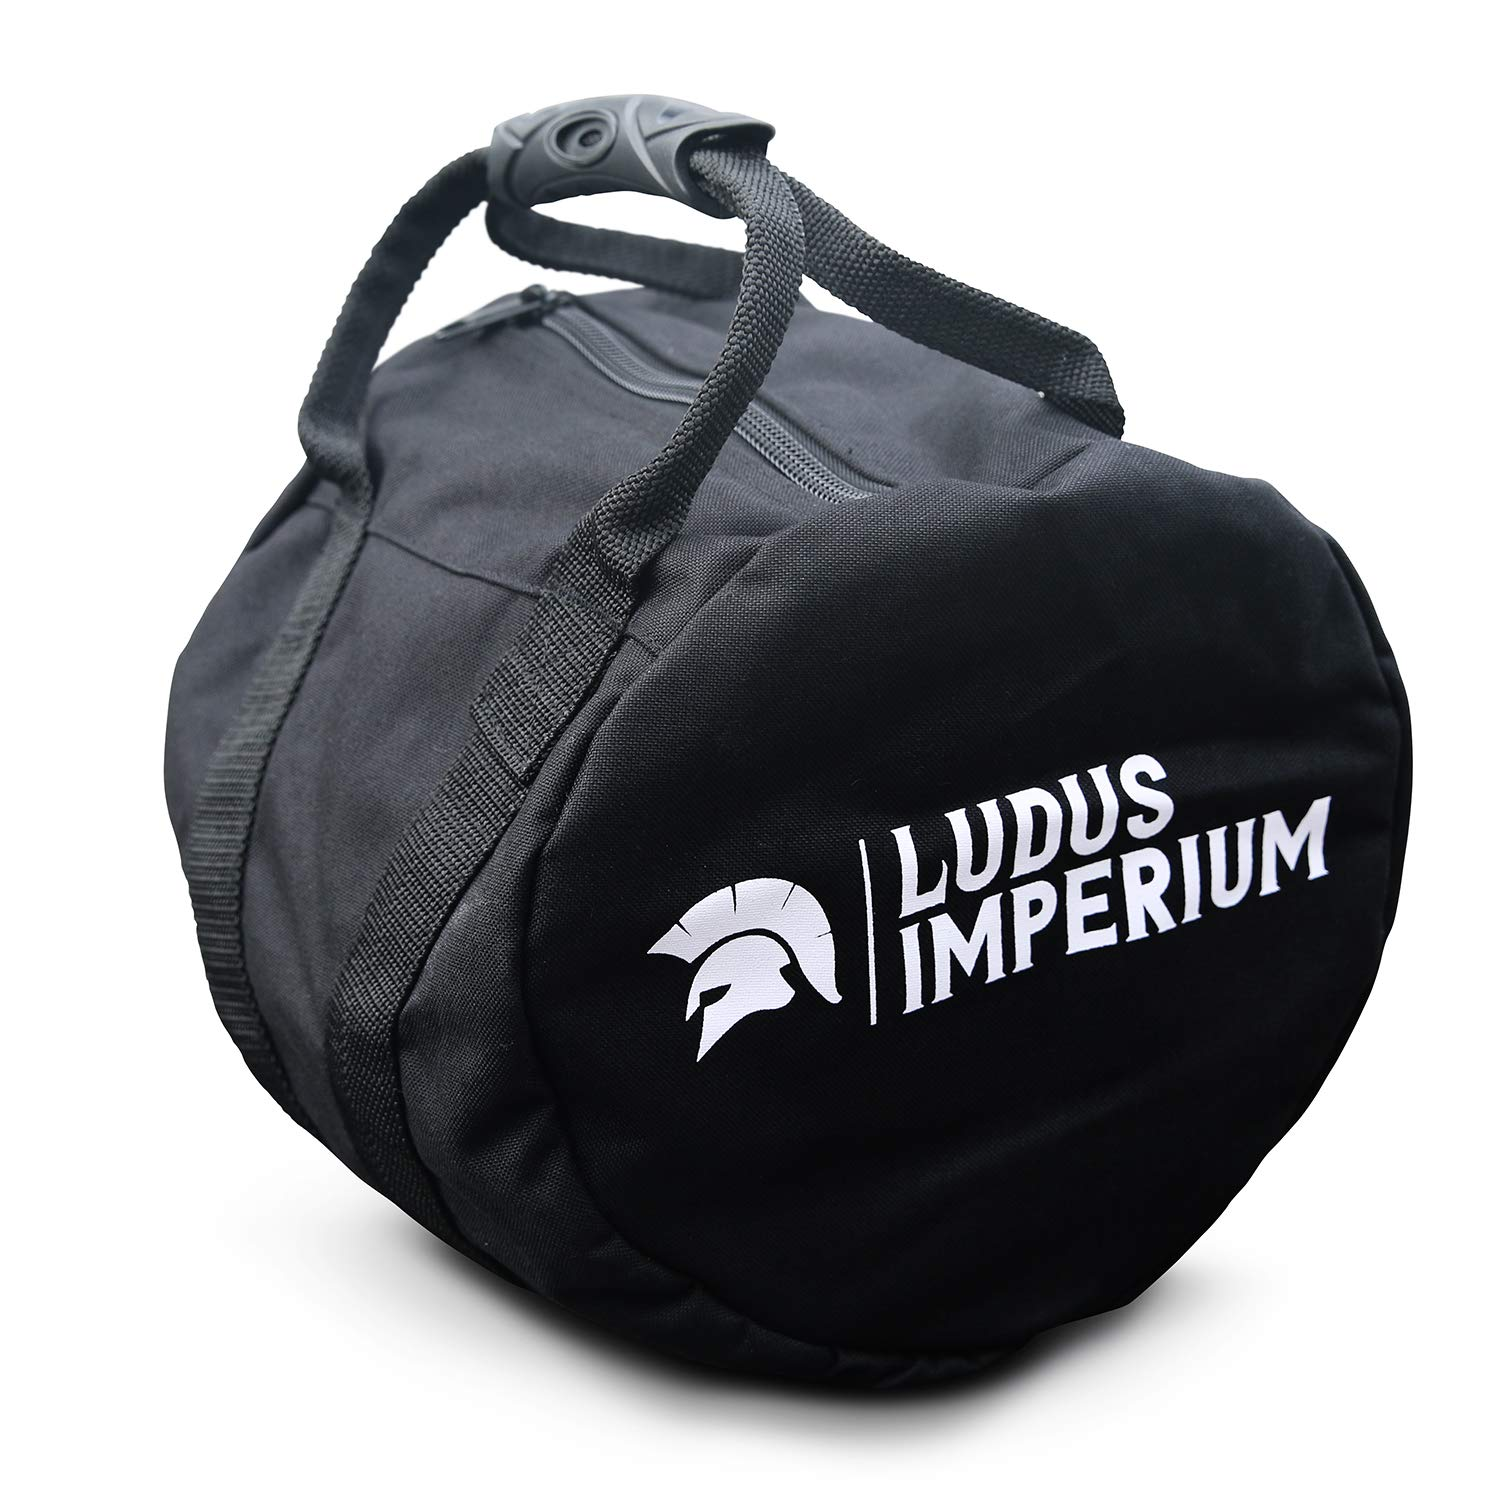 Ludus Imperium Adjustable Kettlebell Sandbag – Heavy Duty Workout Sandbags for Training, Fitness, Cross-Training Exercise, Workouts, Sandbag Weights